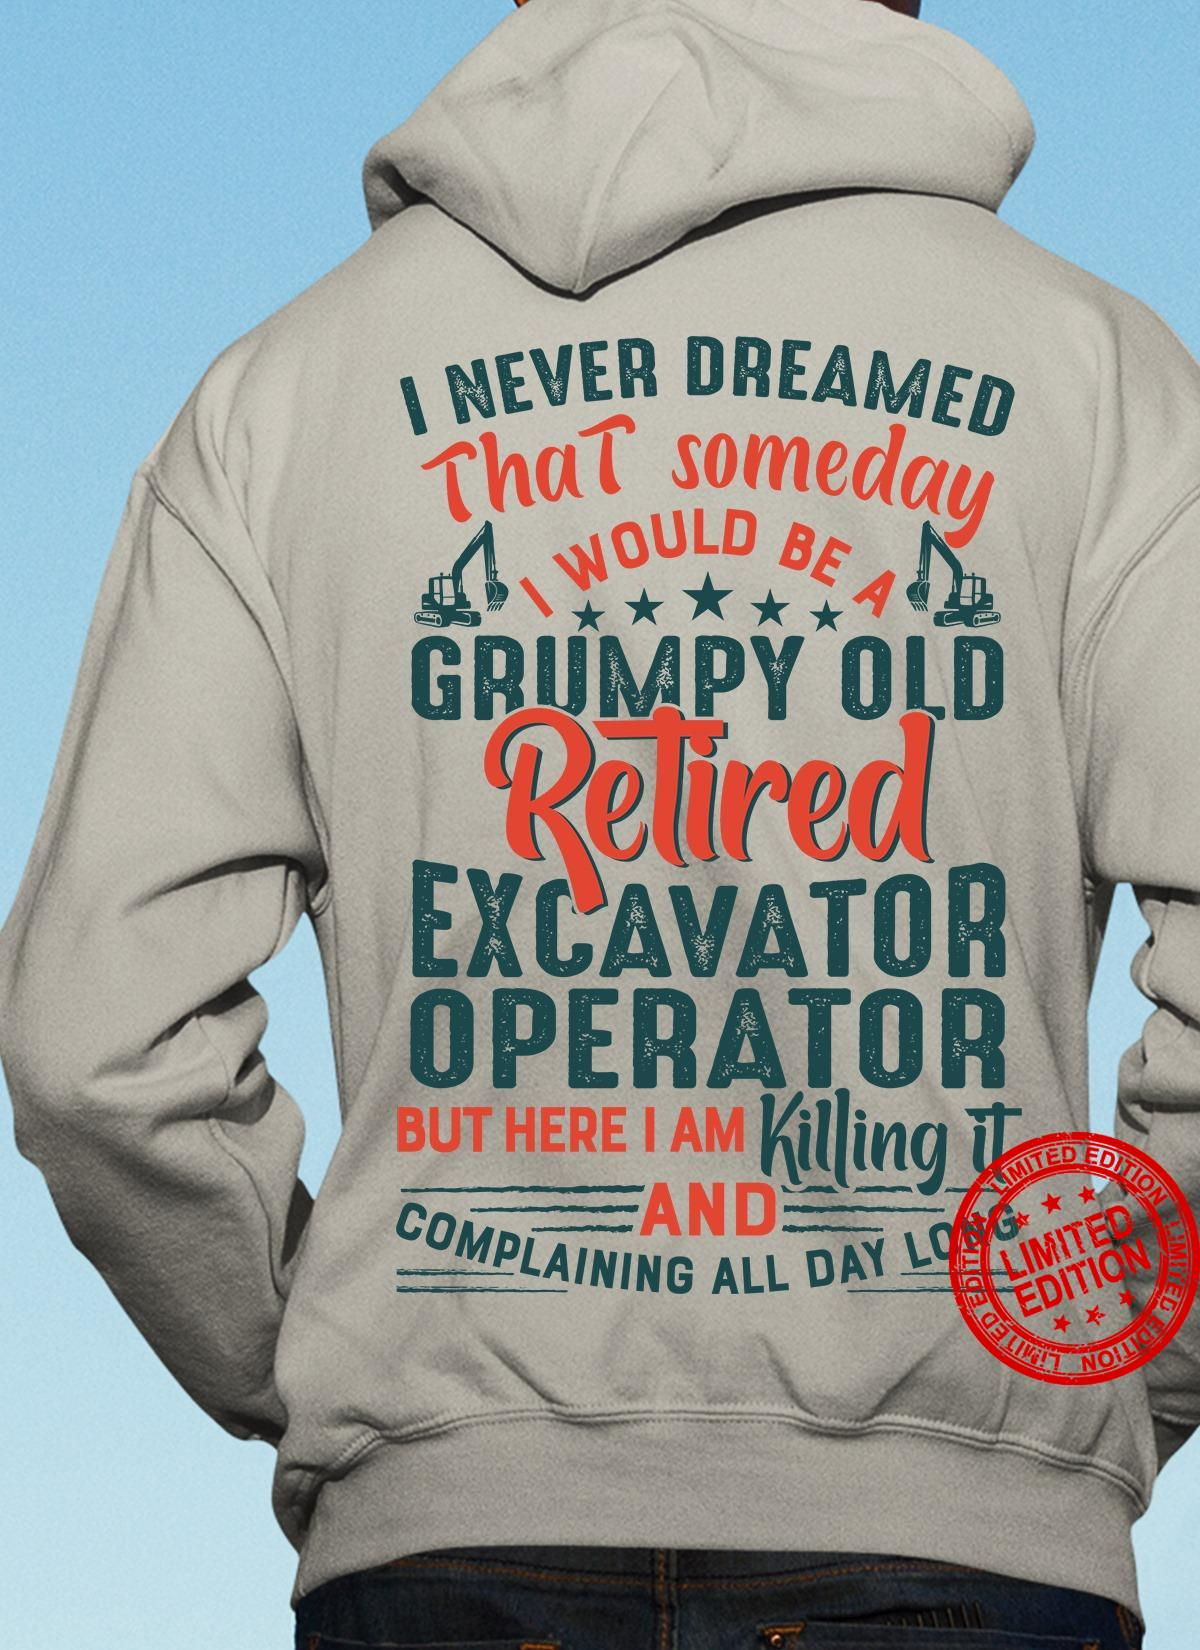 I Never Dreamed That Someday I Would Be A Grumpy Old Retired Excavator Operator Shirt